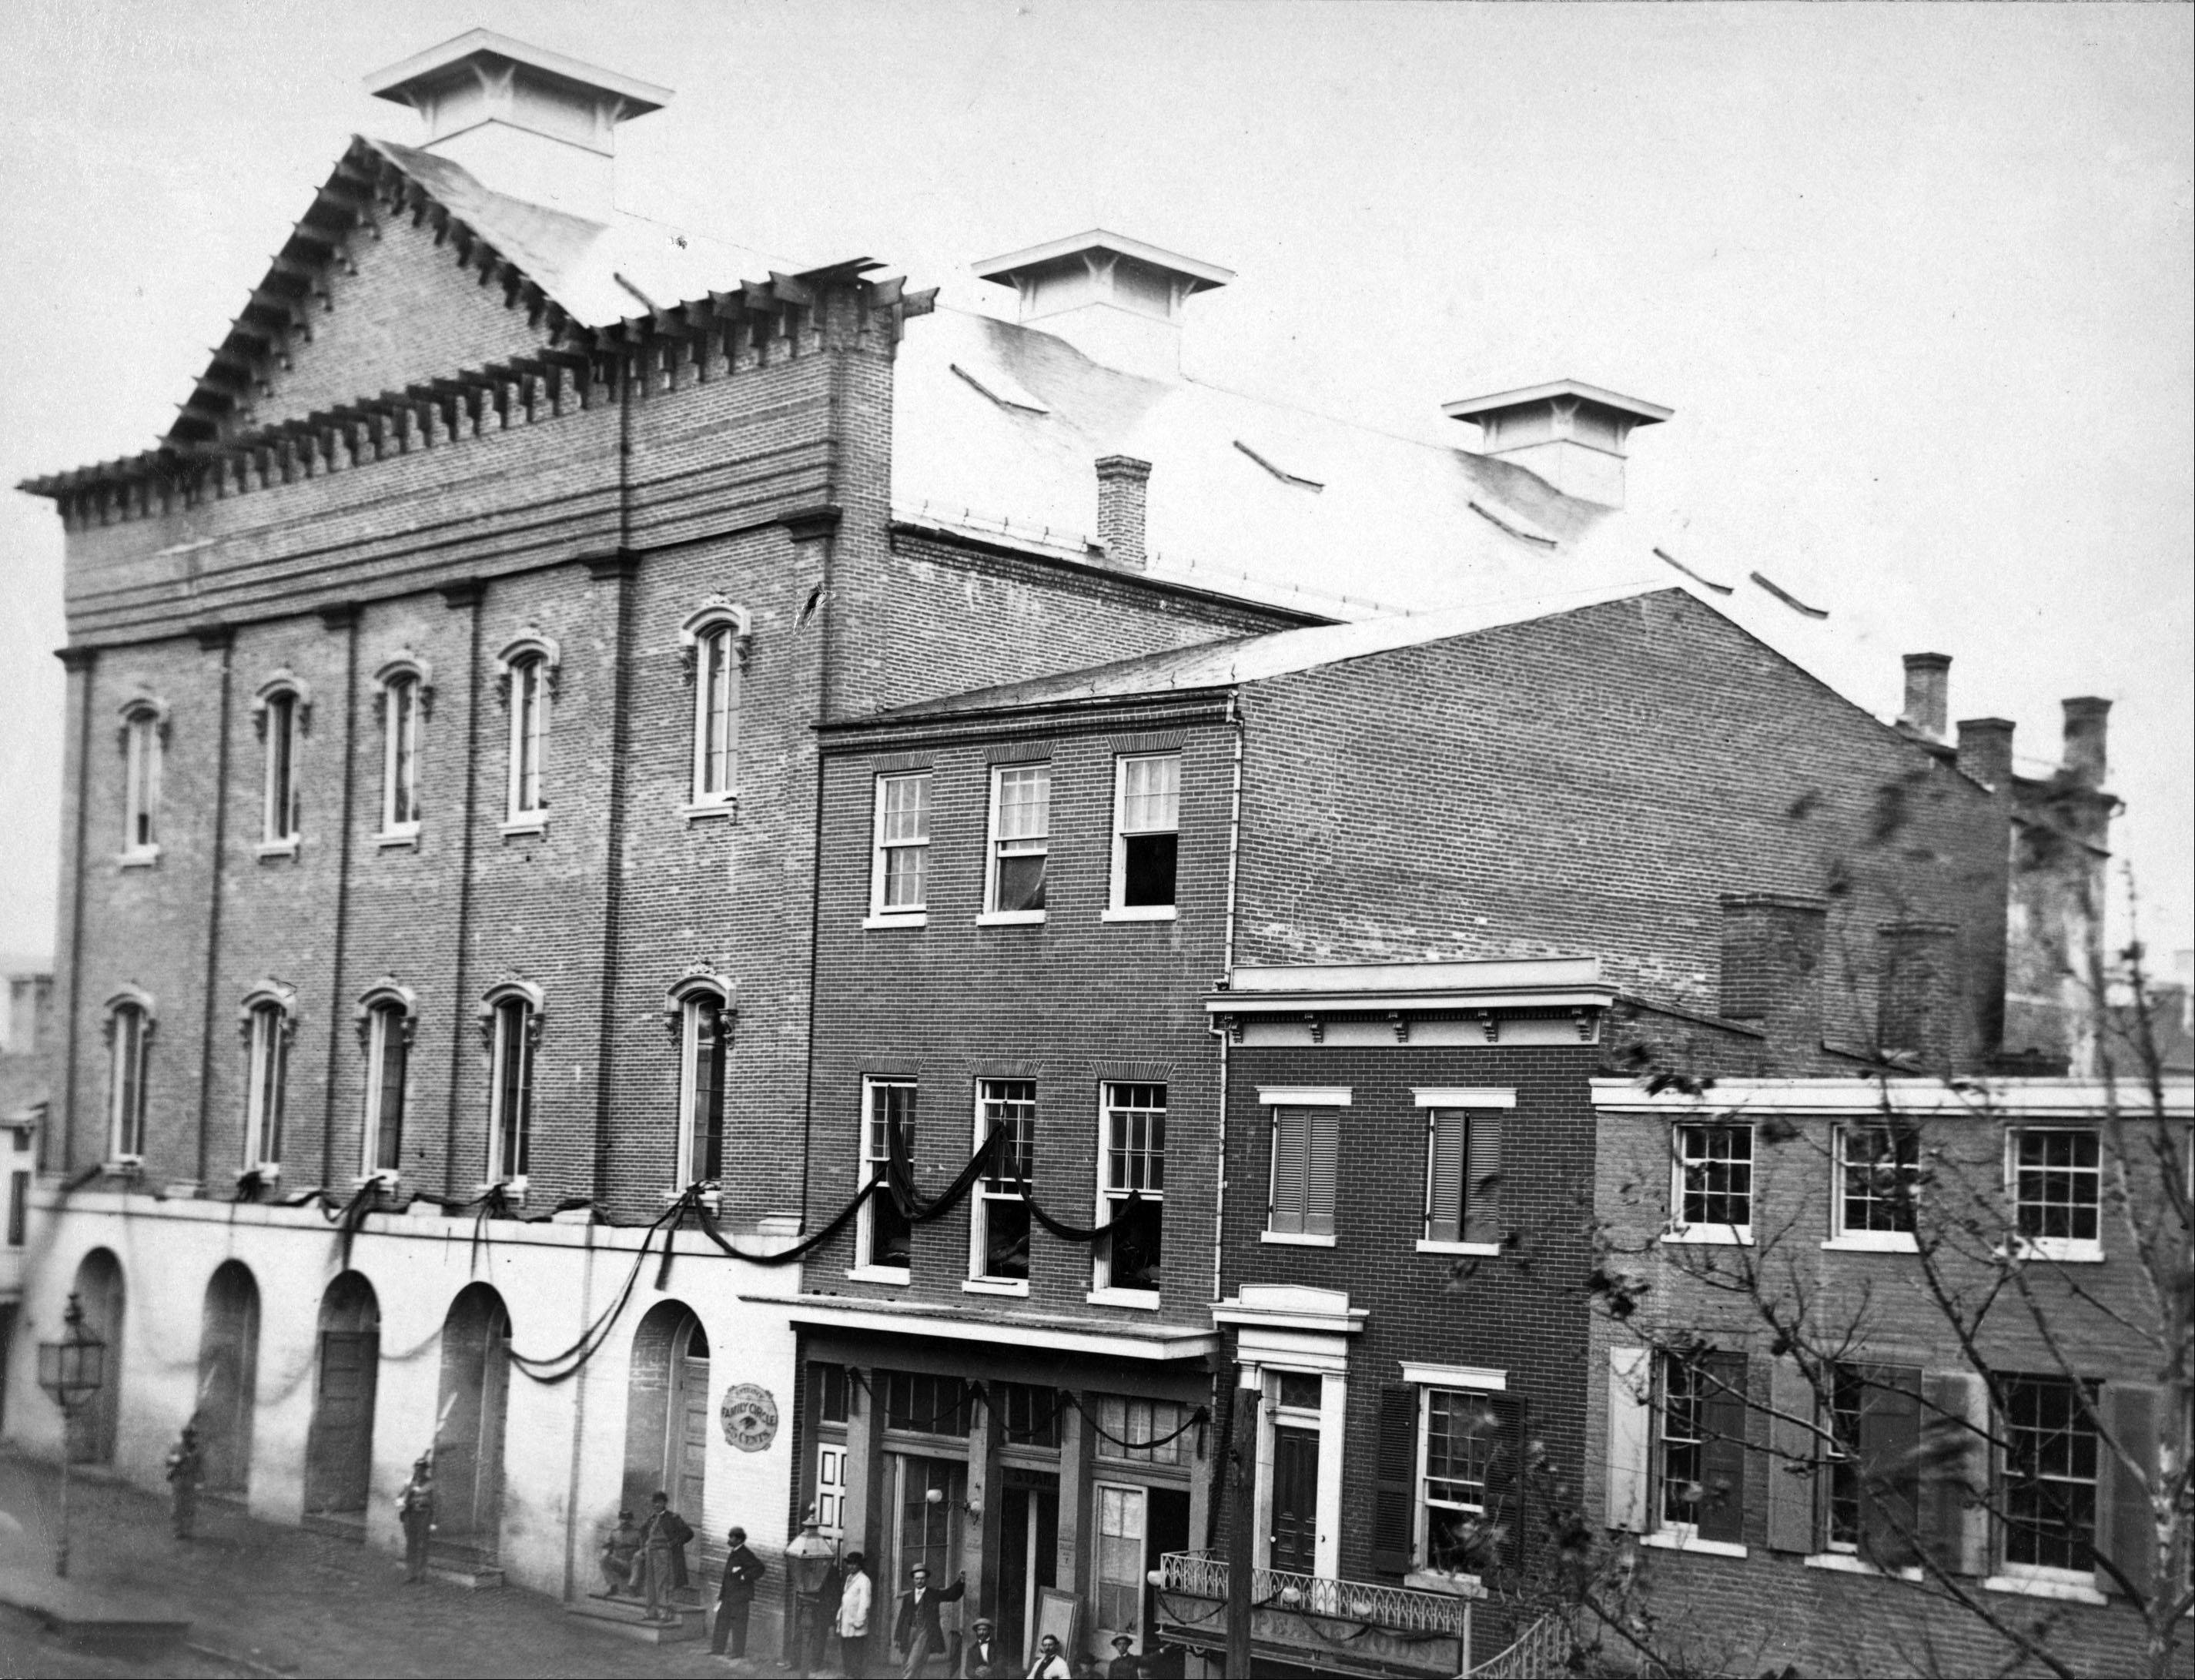 Ford's Theatre, at left, was the scene of the assassination of President Abraham Lincoln in Washington, D.C., in 1865.